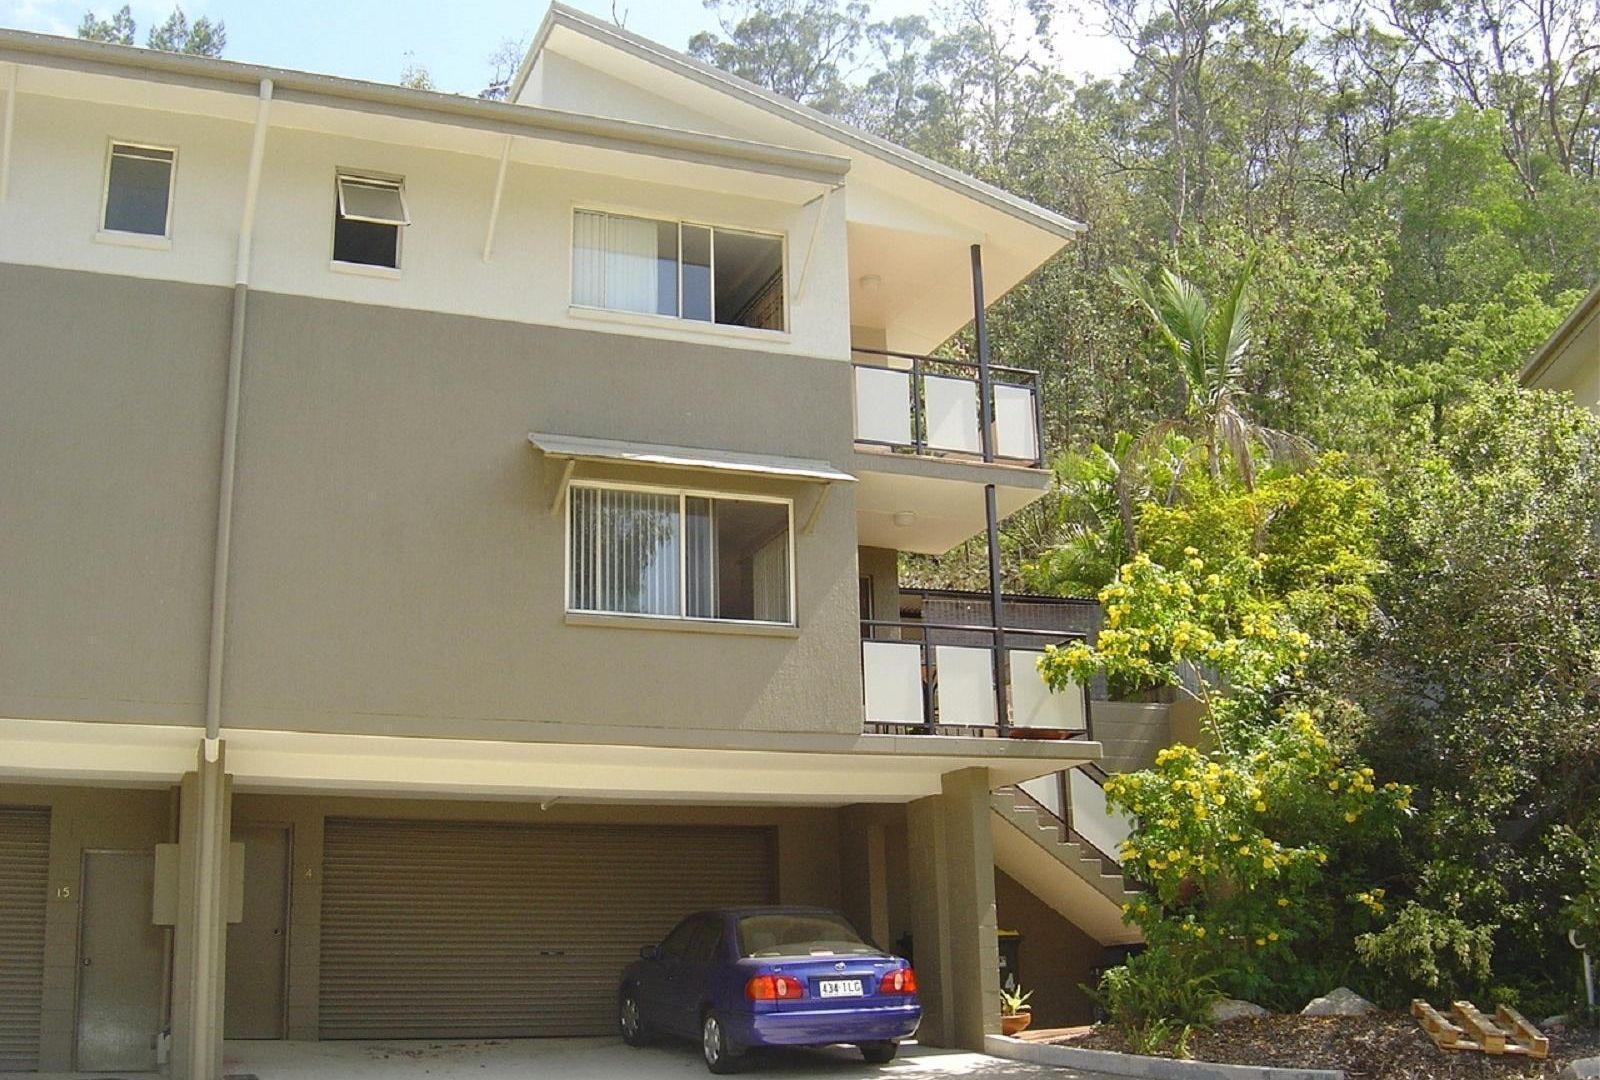 14/1 Glenquarie Place, The Gap QLD 4061, Image 7